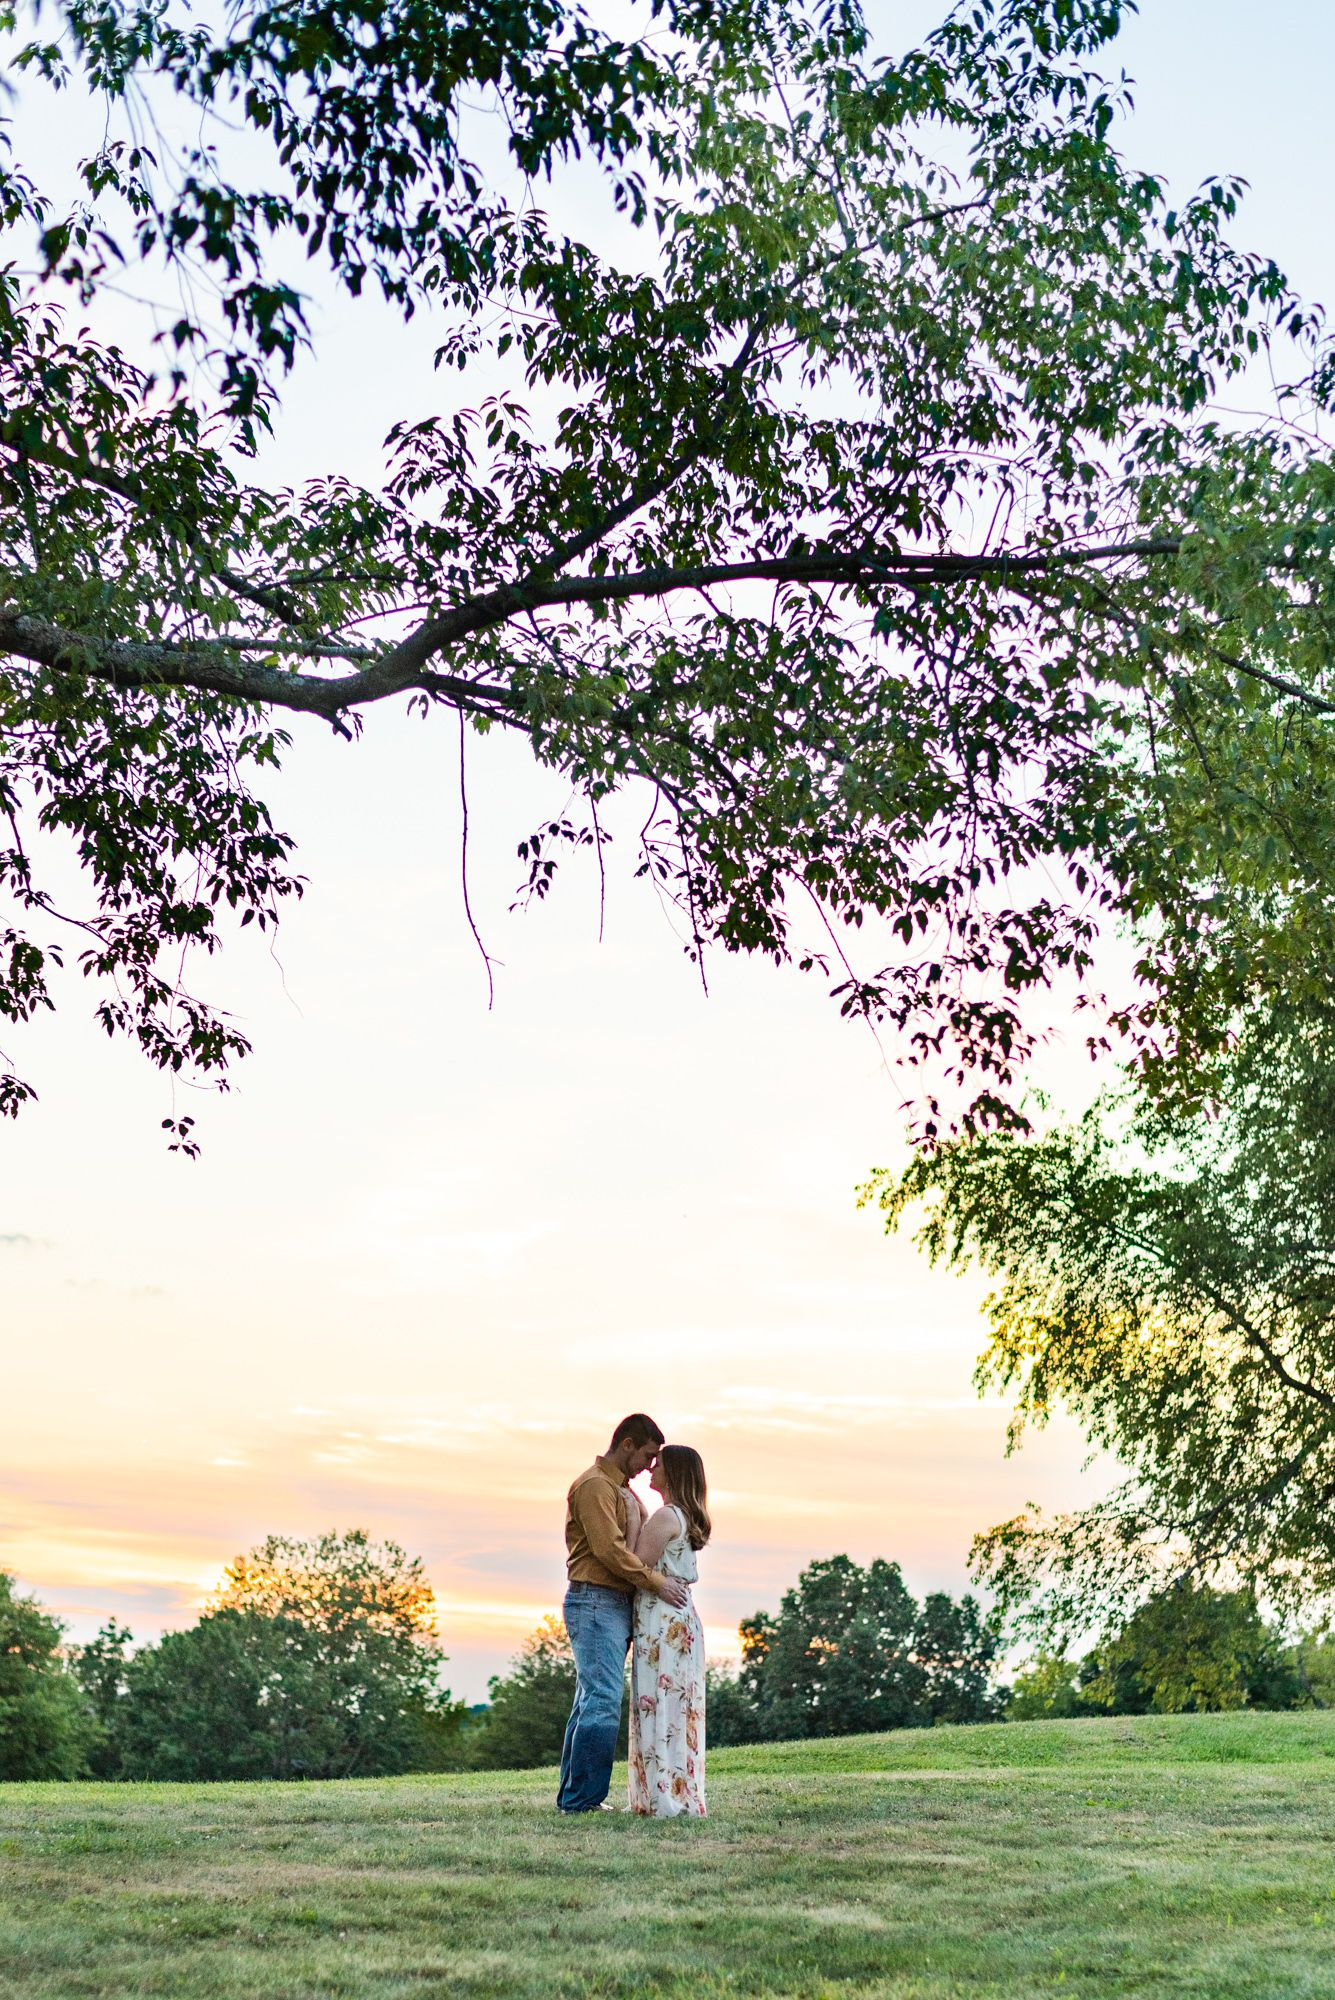 Couple standing under tree in sunset golden hour at Moraine State Park in Pennsylvania